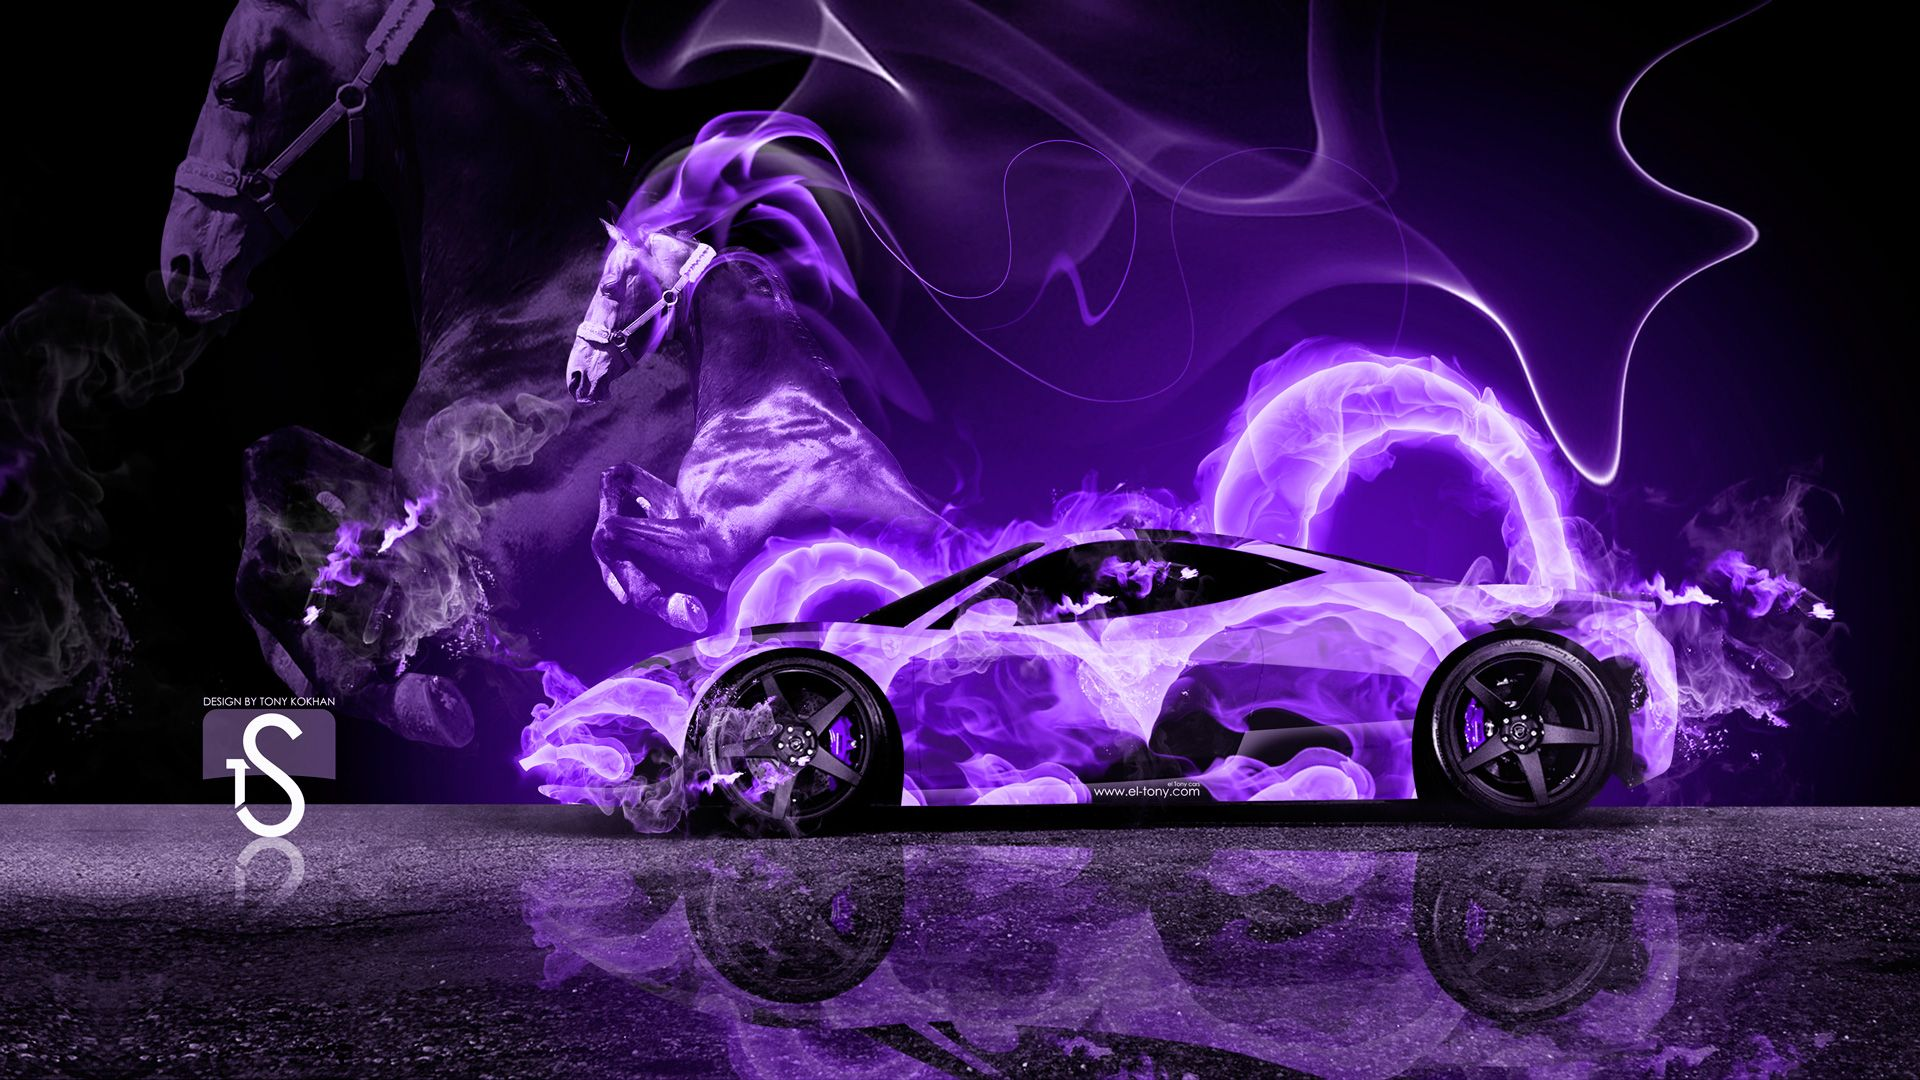 Neon Purple Flames | Ferrari Italia Fire Abstract Car 2013 Ferrari 458  Italia Back Fire .